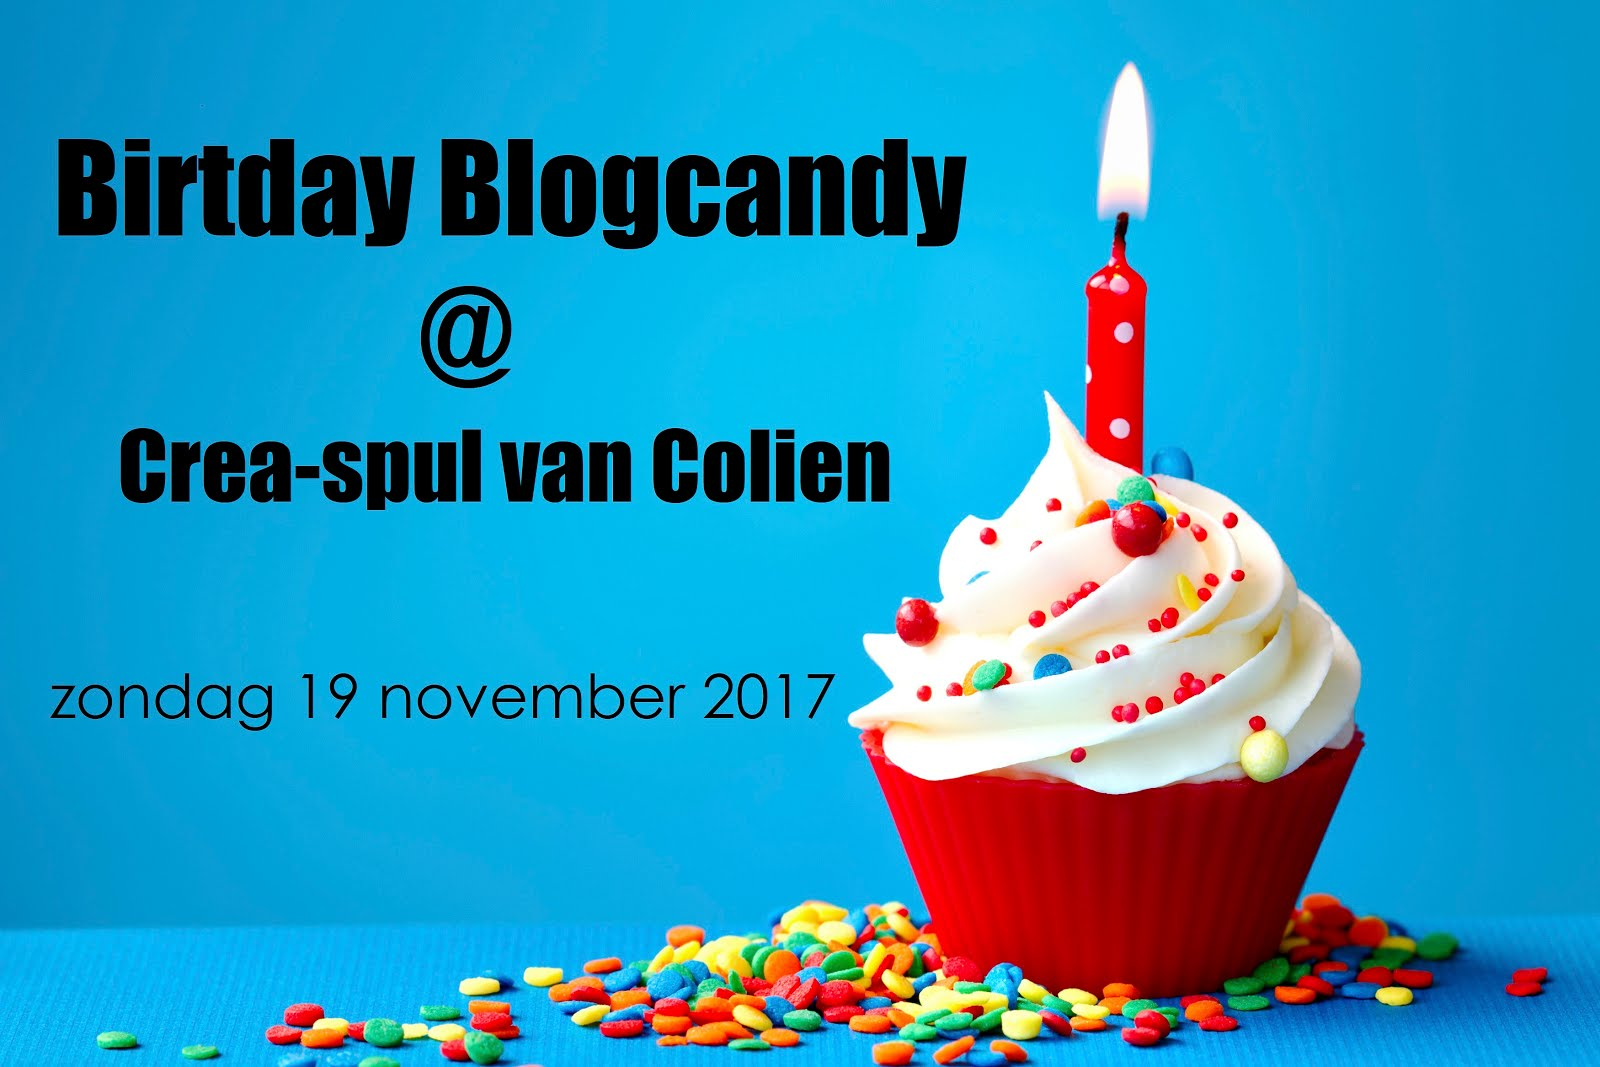 Birthday Blogcandy